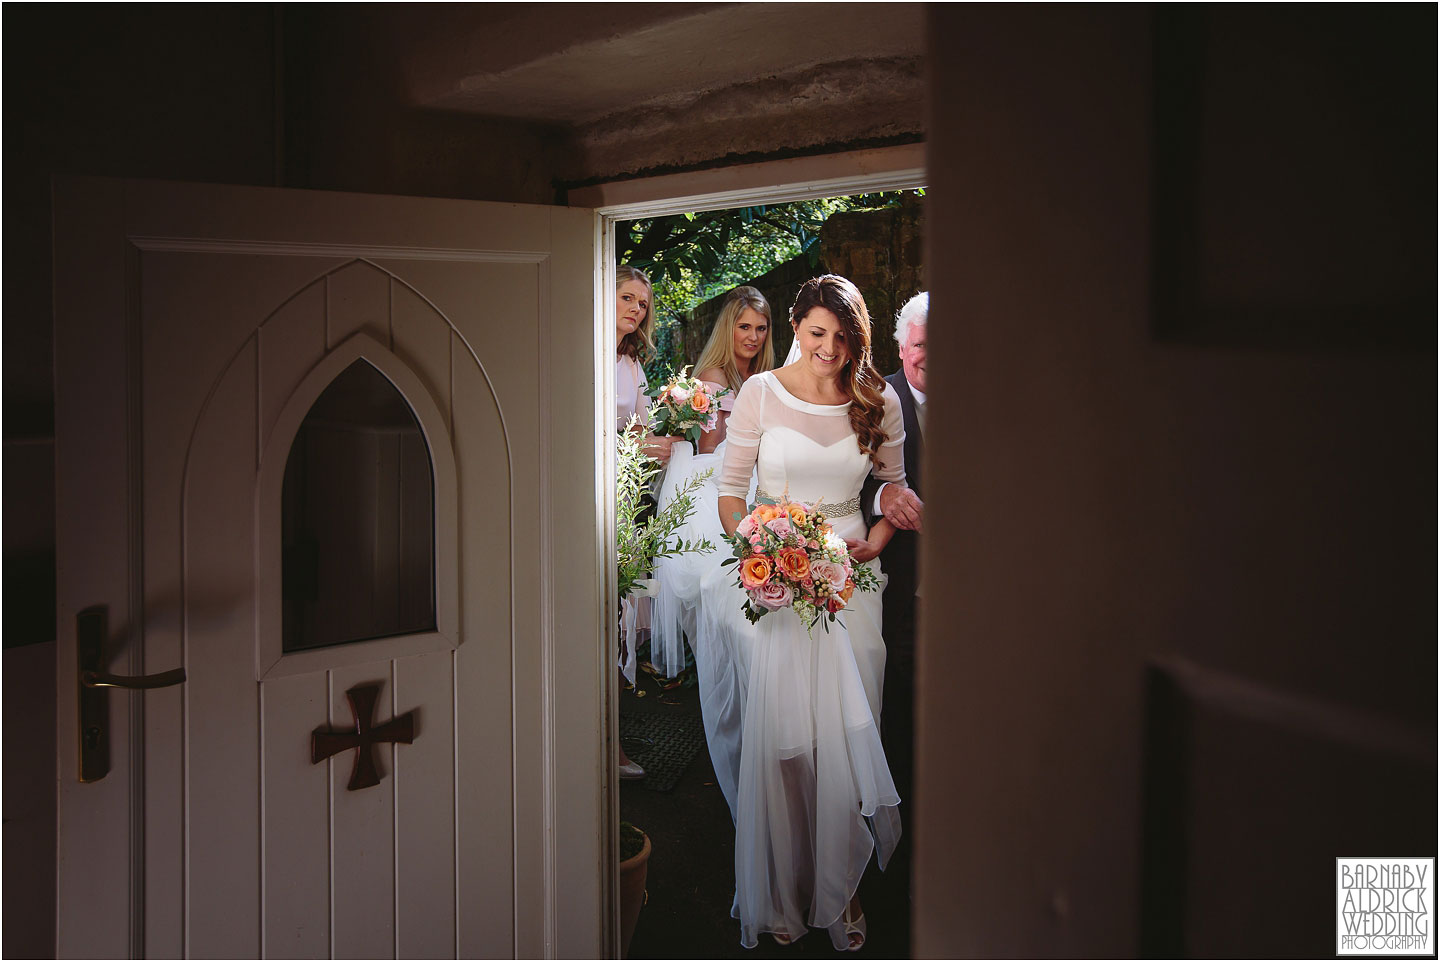 Bridal entrance wedding photograph